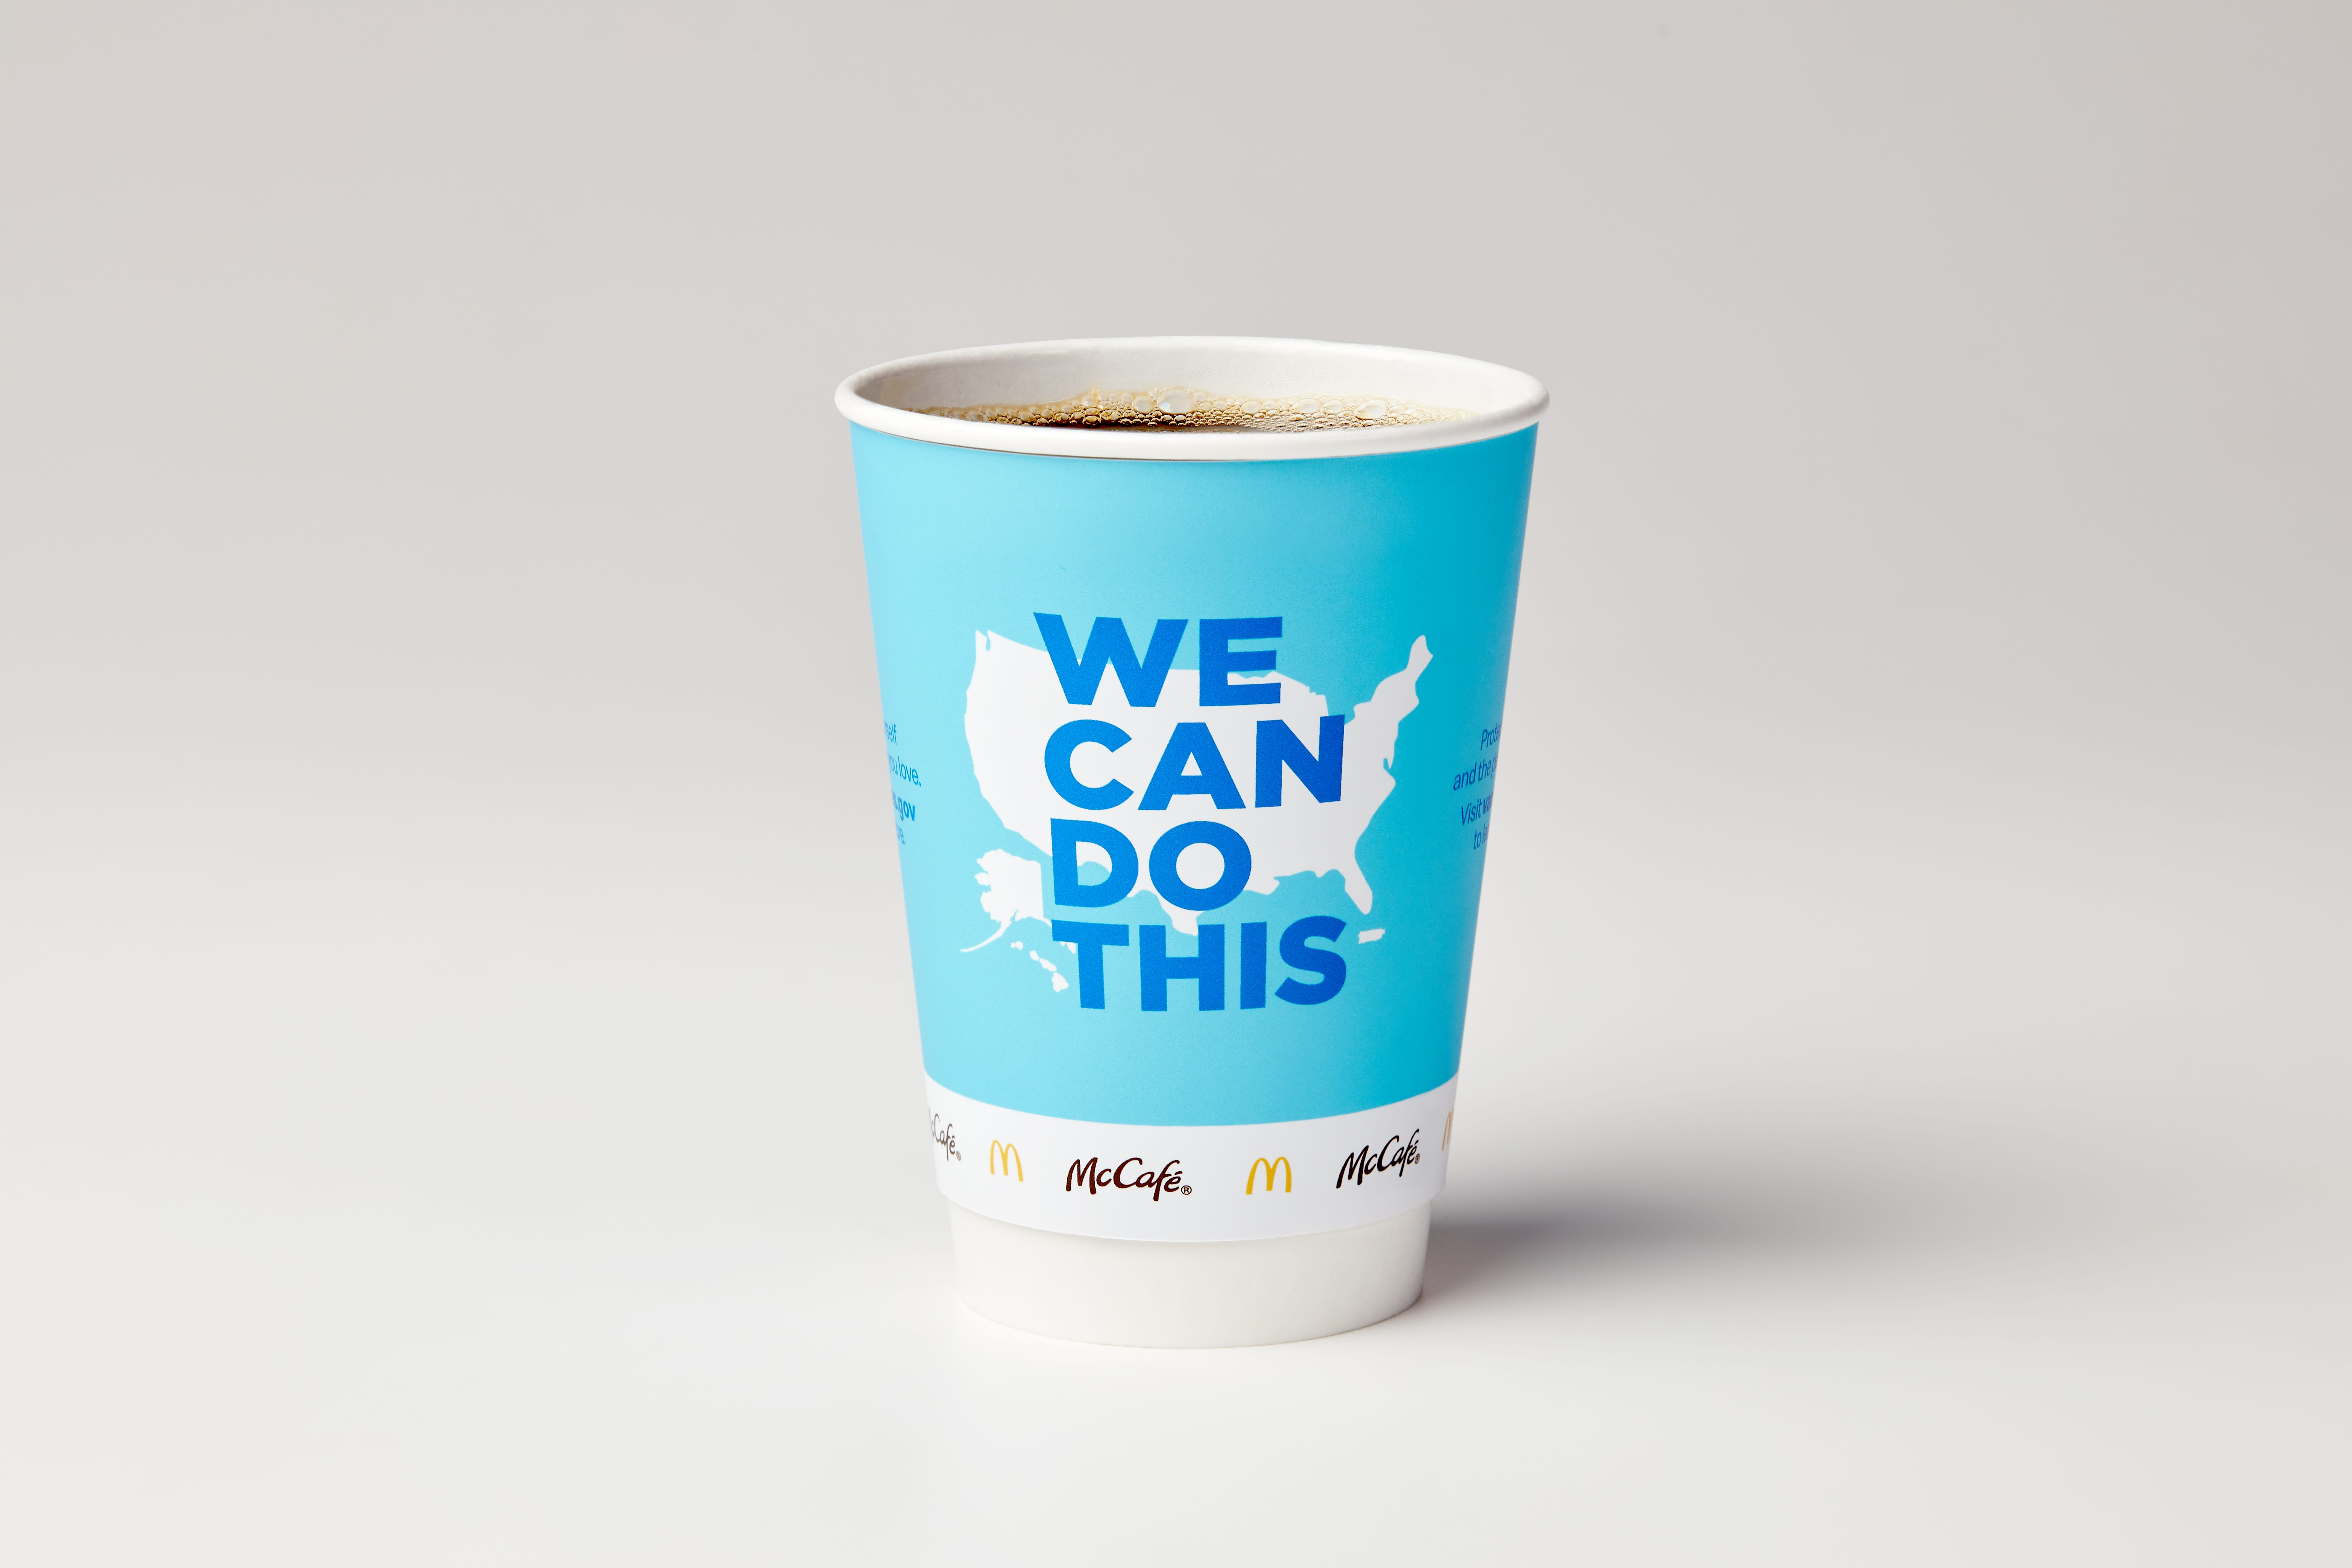 McDonald's bringing COVID-19 vaccine awareness message to coffee cups, Times Square billboard